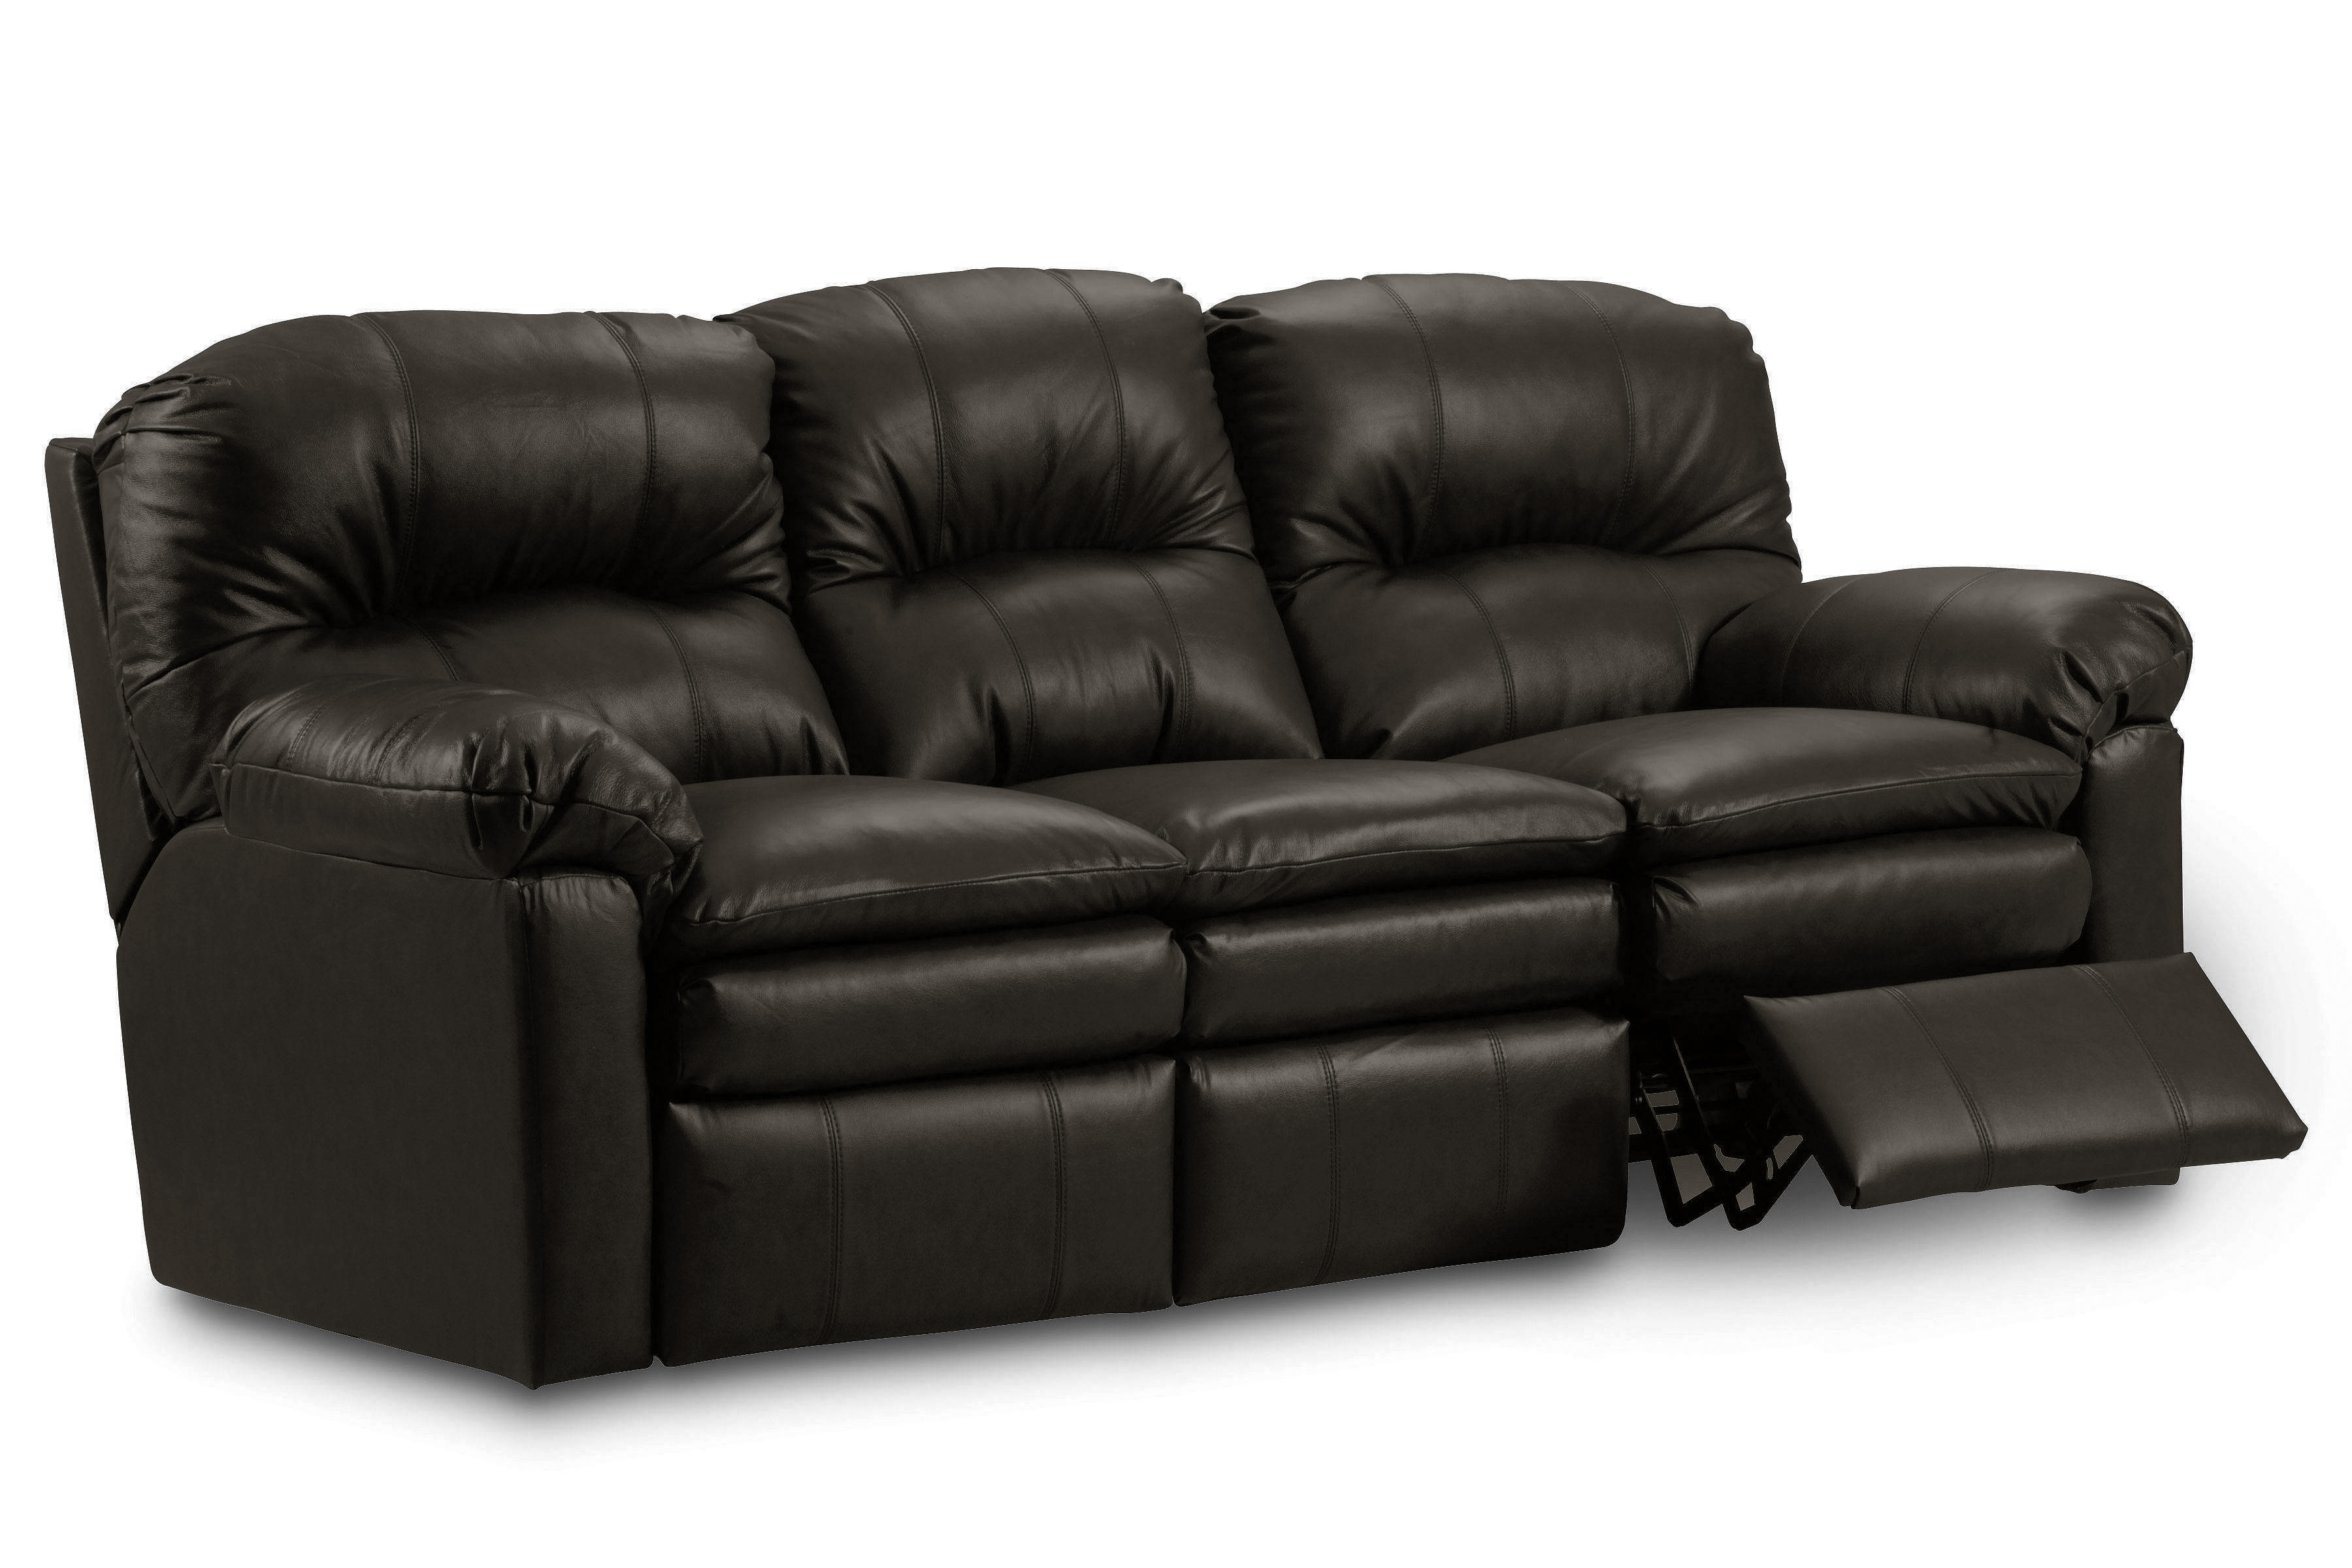 Lane Furniture Touchdown Black Double Reclining Sofa Click To Enlarge